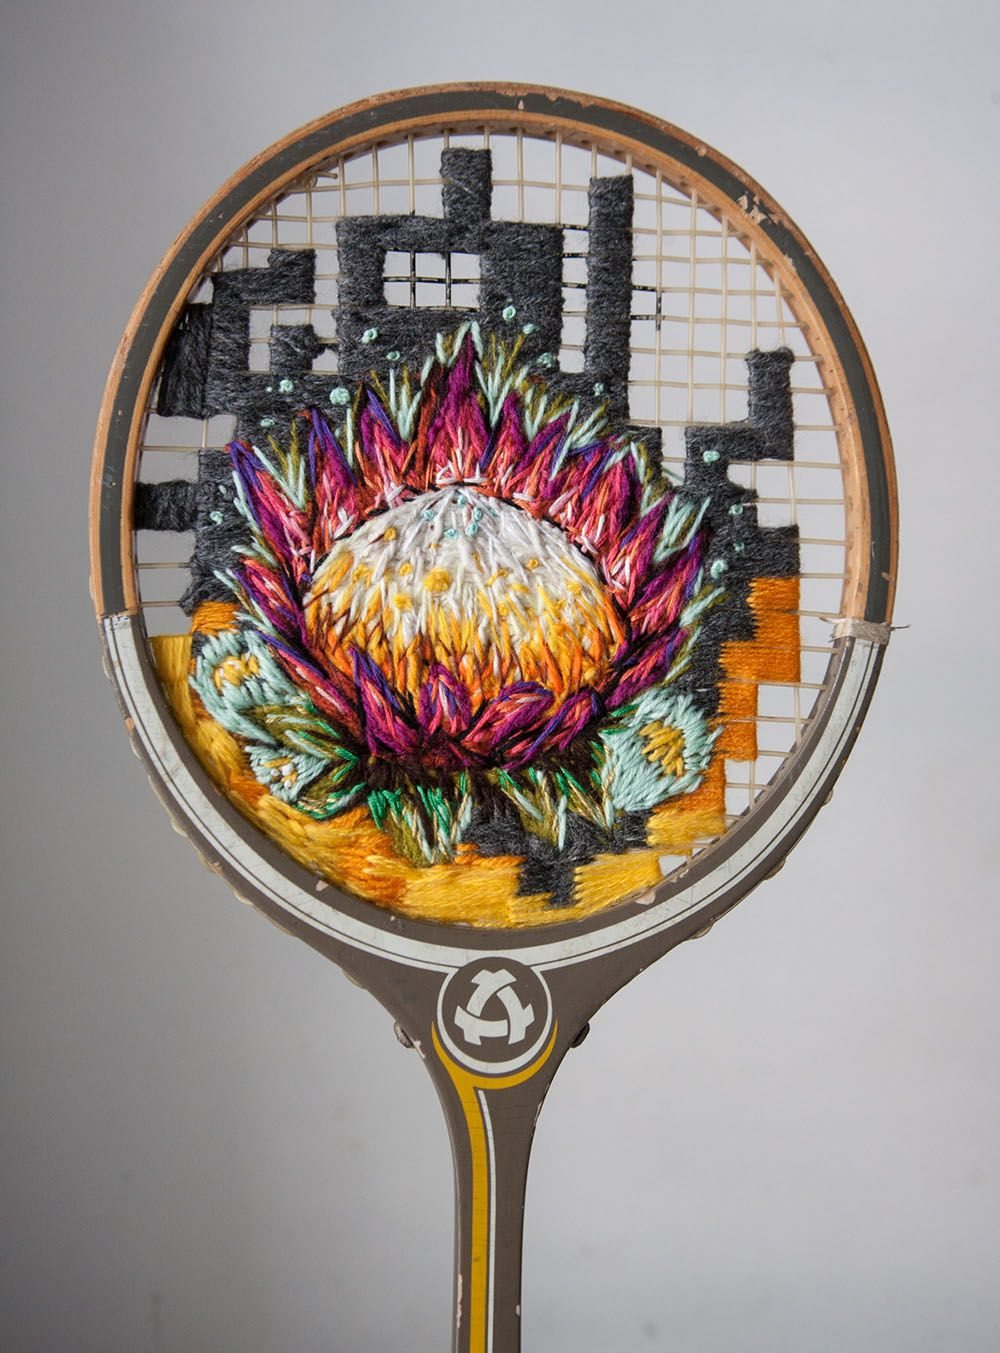 Flowers Embroidered On The Strings Of Vintage Rackets And Other Thread Artworks By Danielle Clough Embroidery Art Tennis Racket Art Racquets